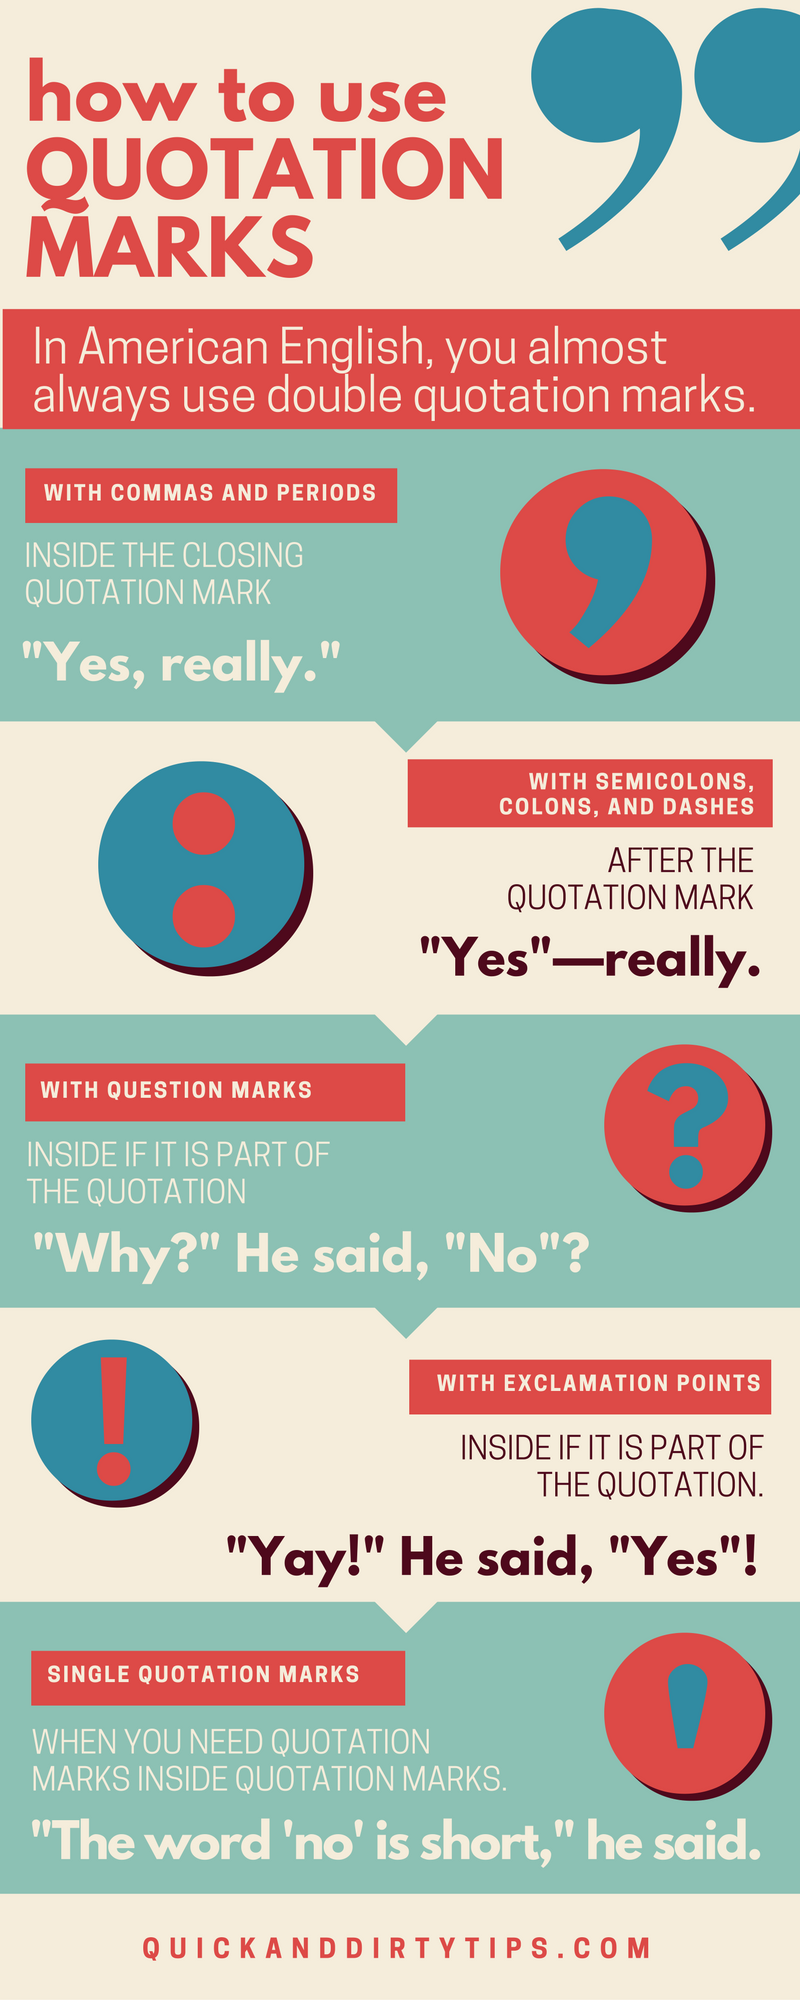 Quotes And Punctuation How To Use Quotation Marks 9 Examples  Grammar Girl